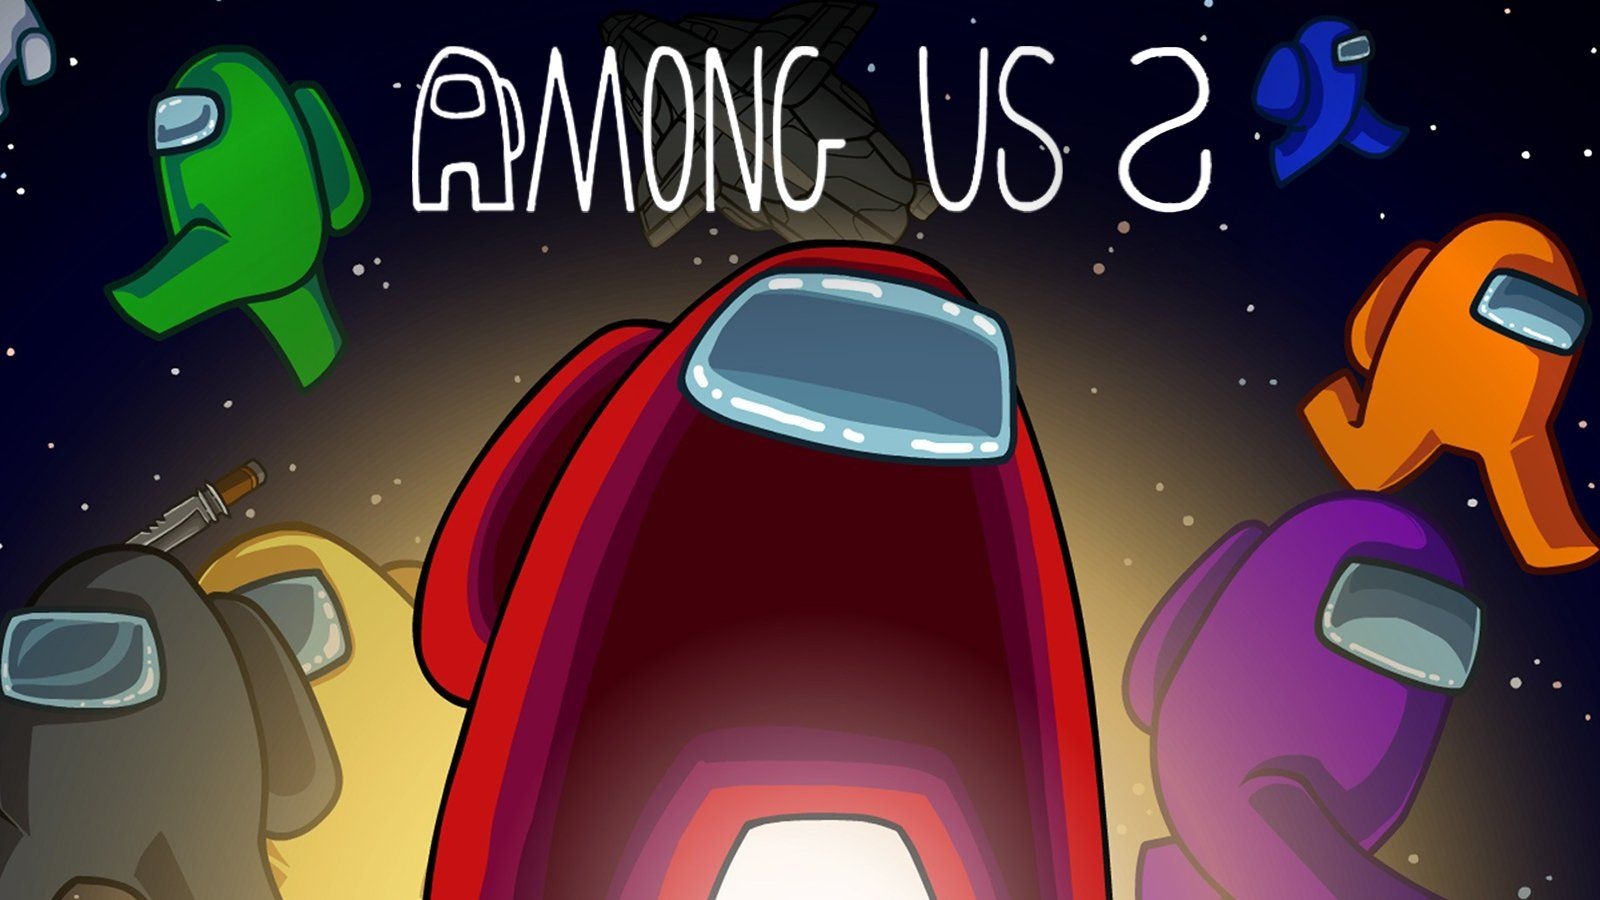 Among Us Aesthetic Wallpapers - Wallpaper Cave